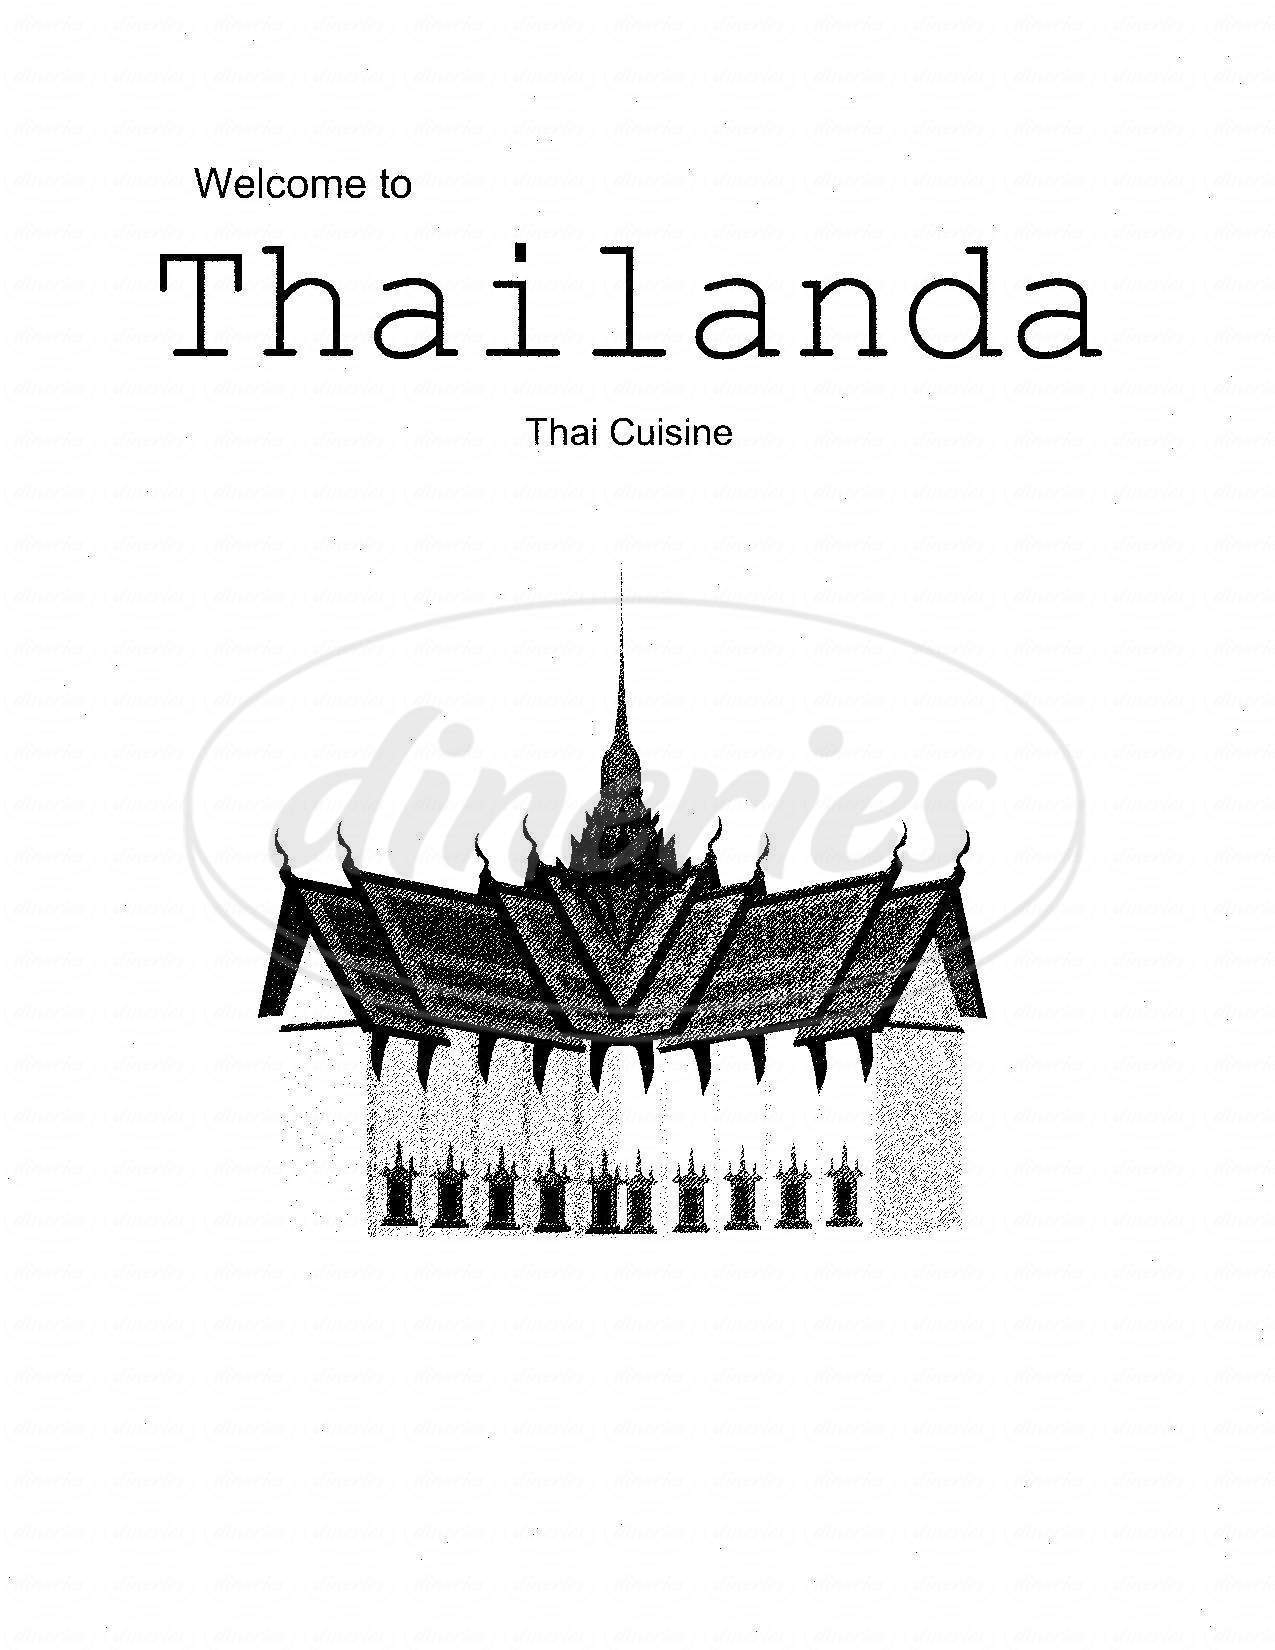 menu for Thailanda